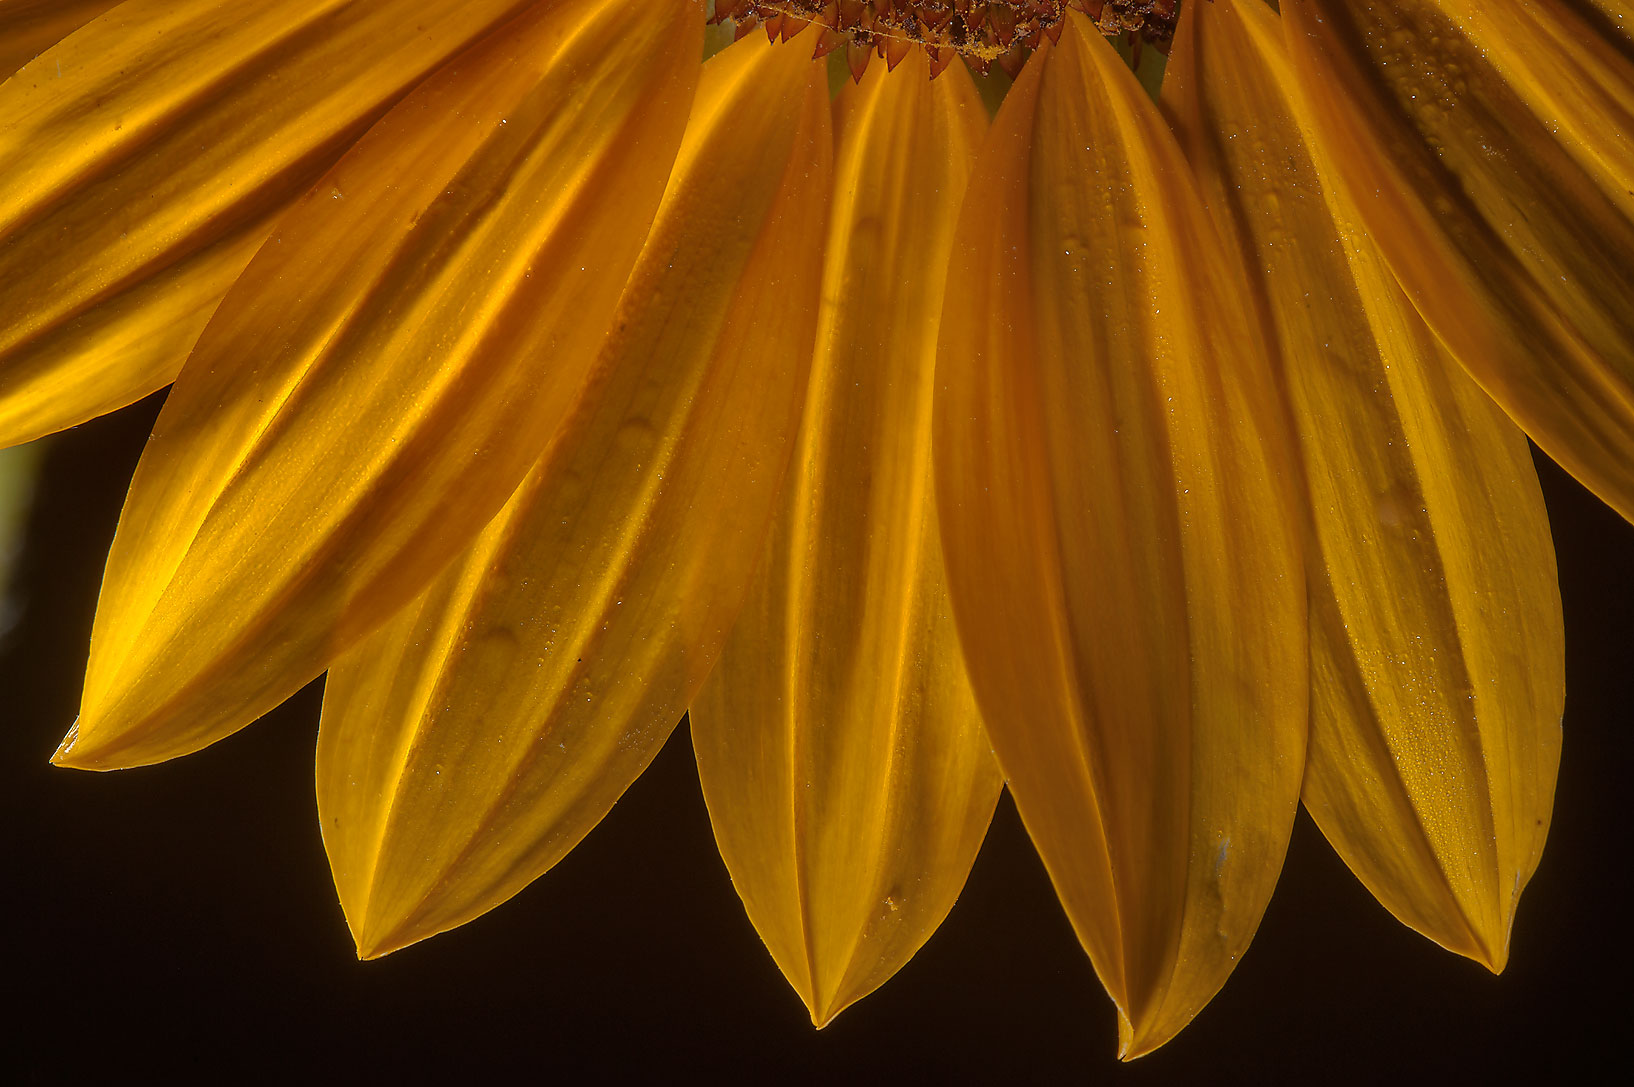 Close up of petals of sunflower (Helianthus annuus) in Lake Bryan Park. Bryan, Texas